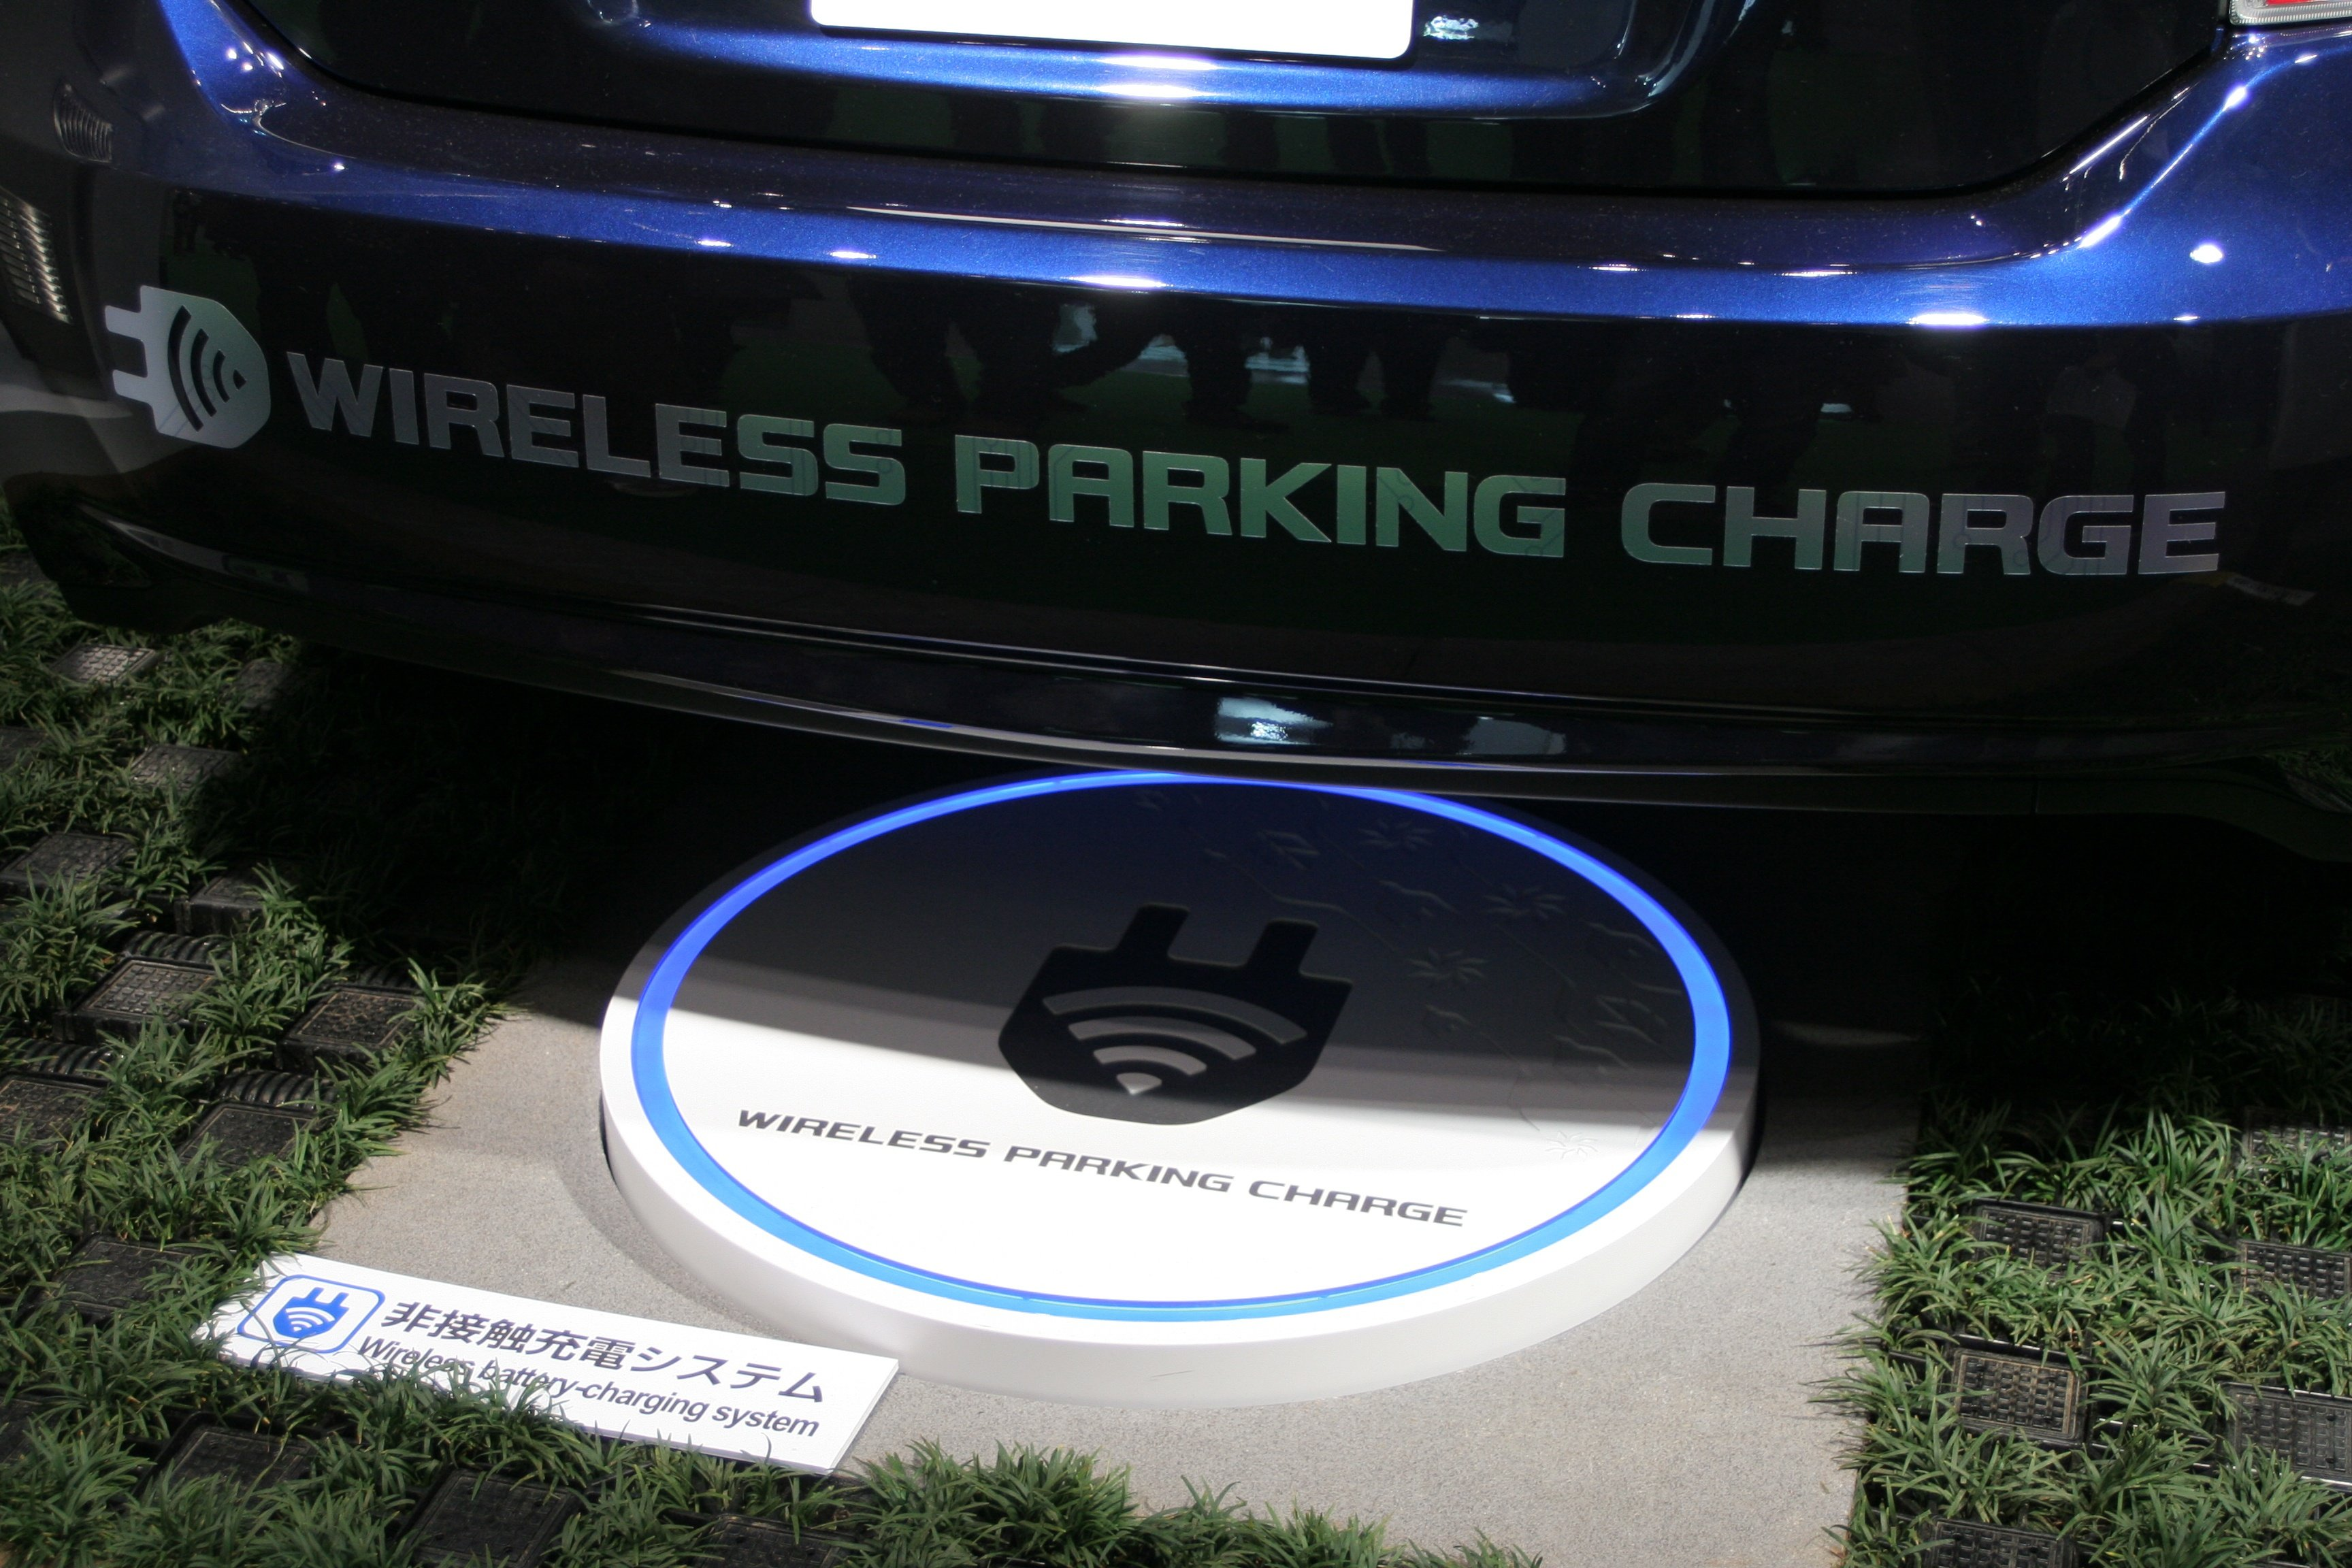 Image of wireless Parking charger